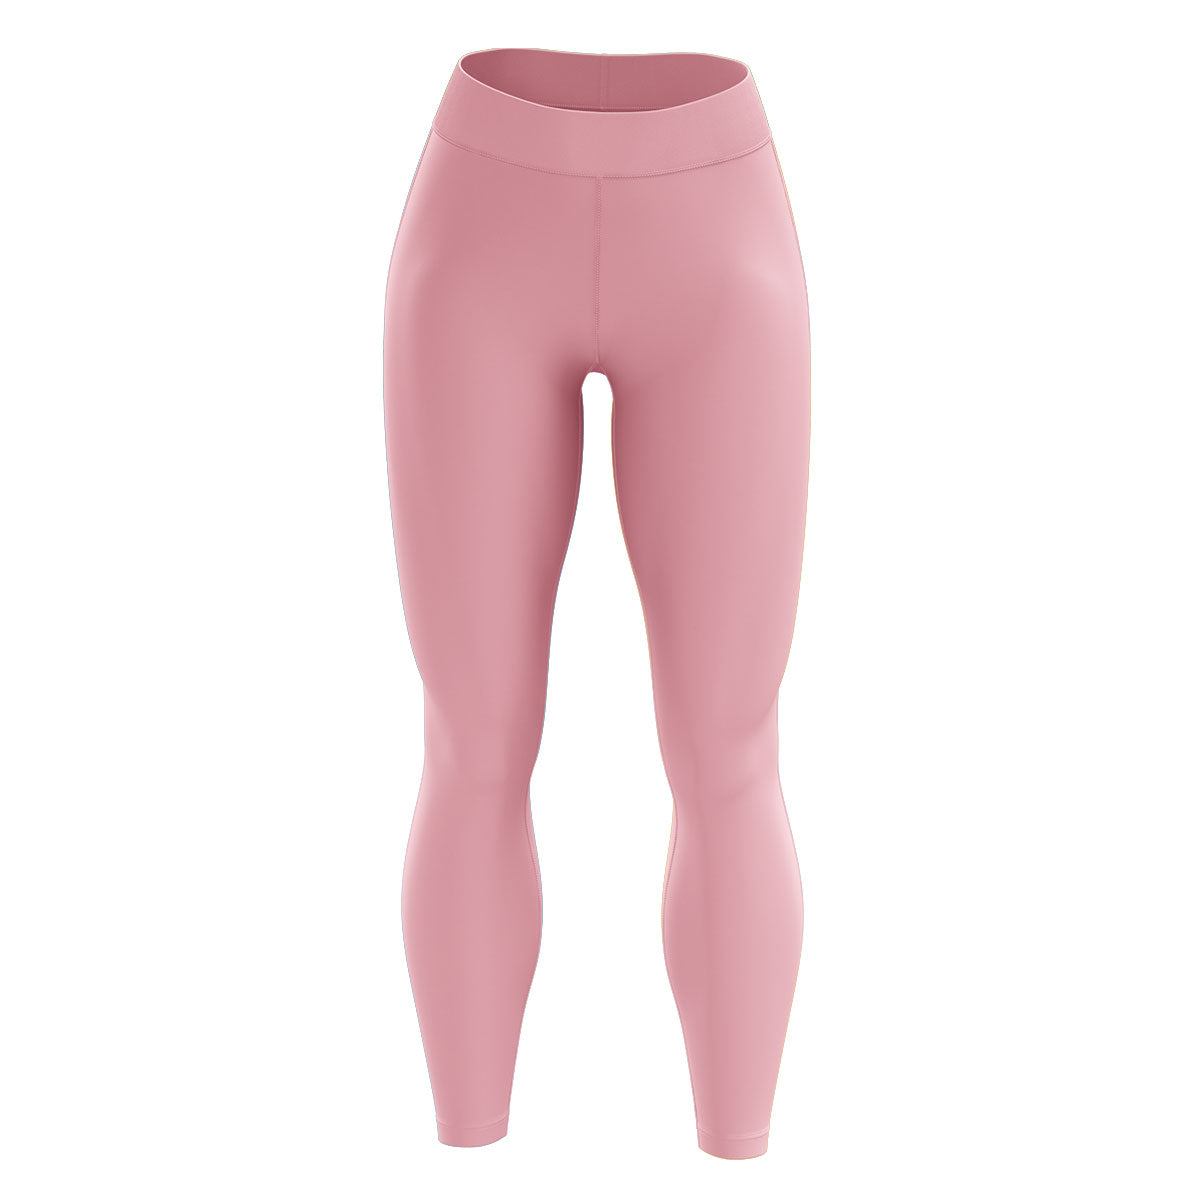 Light Pink High Waisted Yoga Leggings